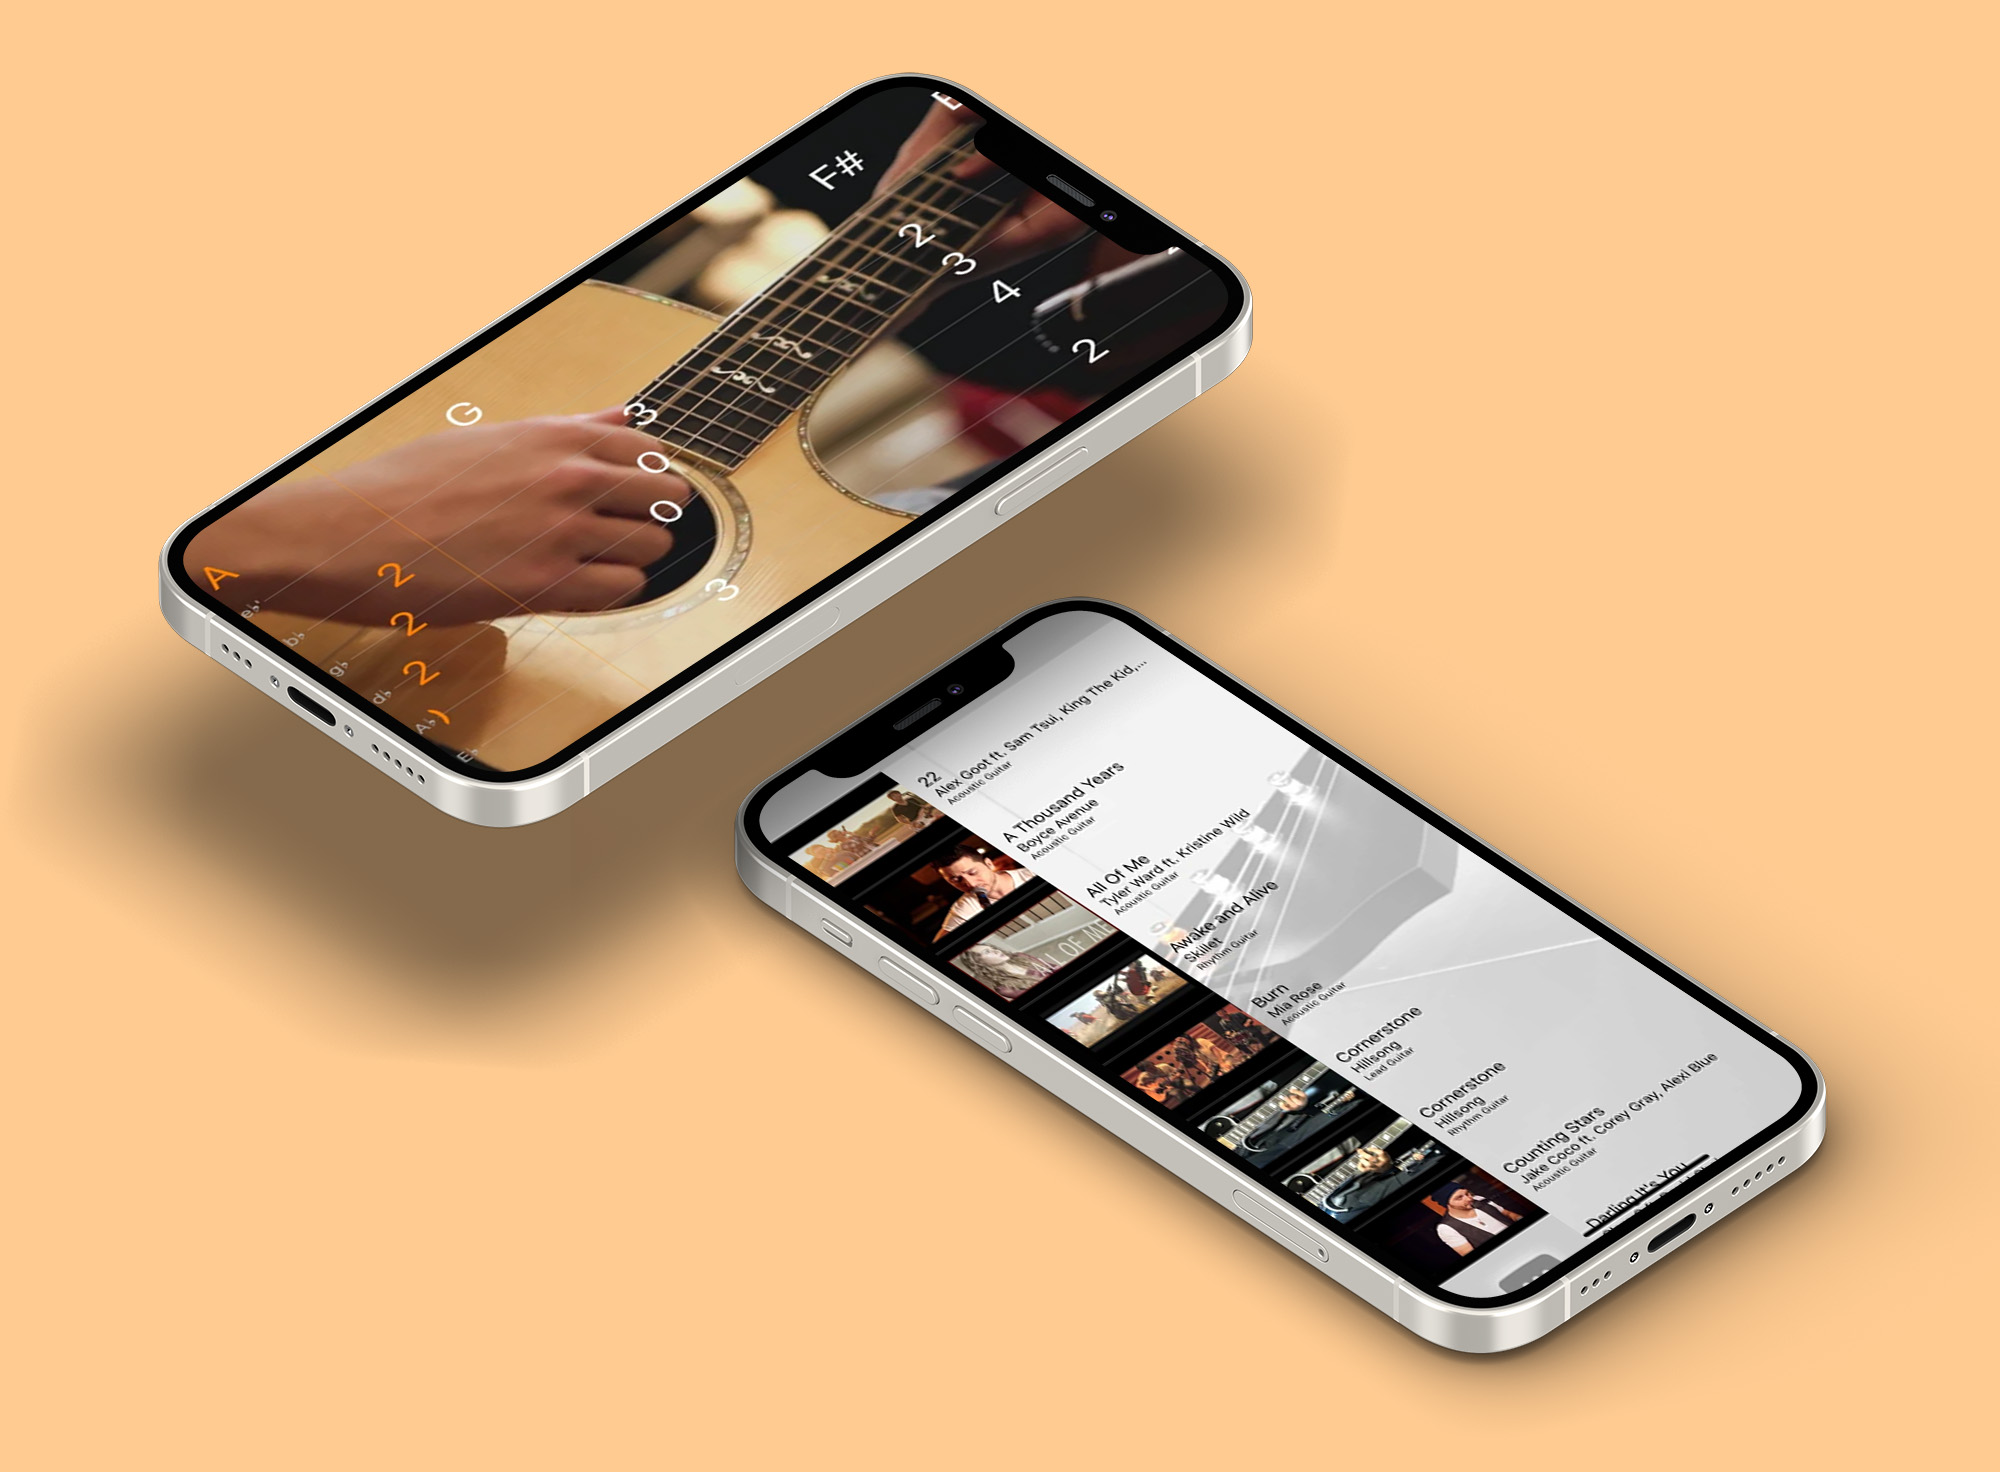 a mockup of 2 iphone 12s. the first iphone is showing the woodshed app while playing a song and showing the chords for it. the second iphone is showing the app in the browse page. users can use the browse page to find a song they would want to learn.